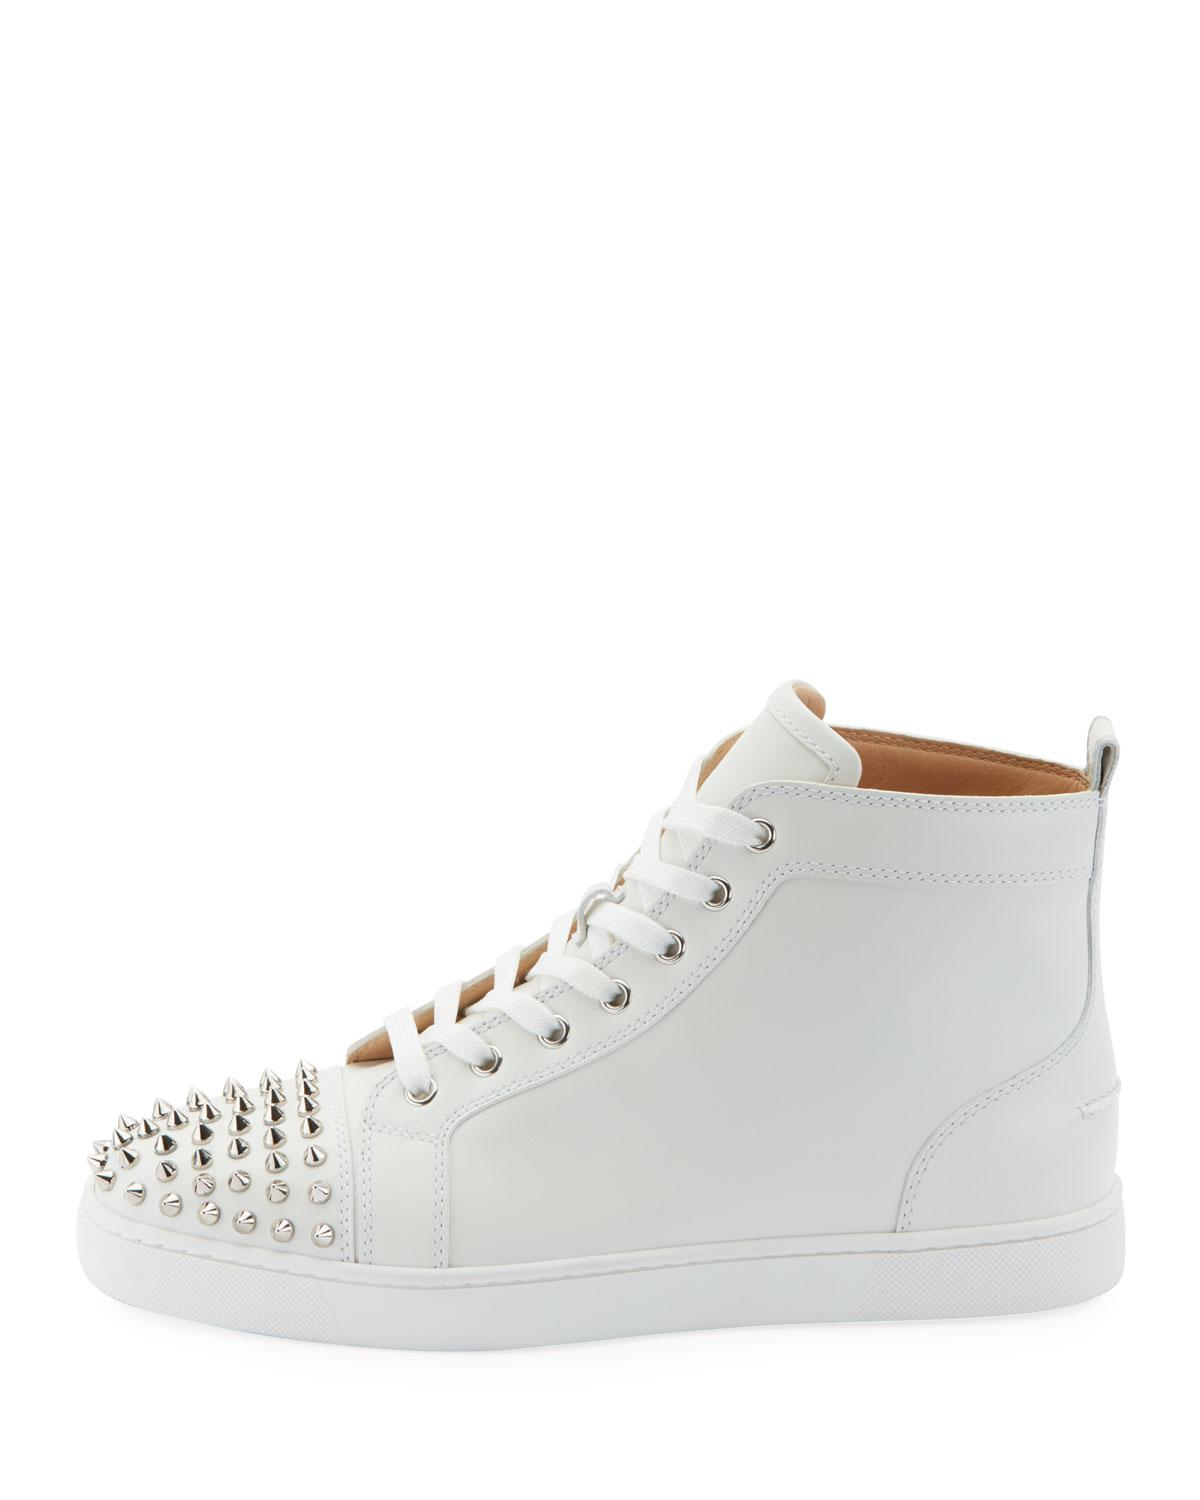 606cc7c70c80 Lyst - Christian Louboutin Men s Lou Spikes High-top Sneakers in White